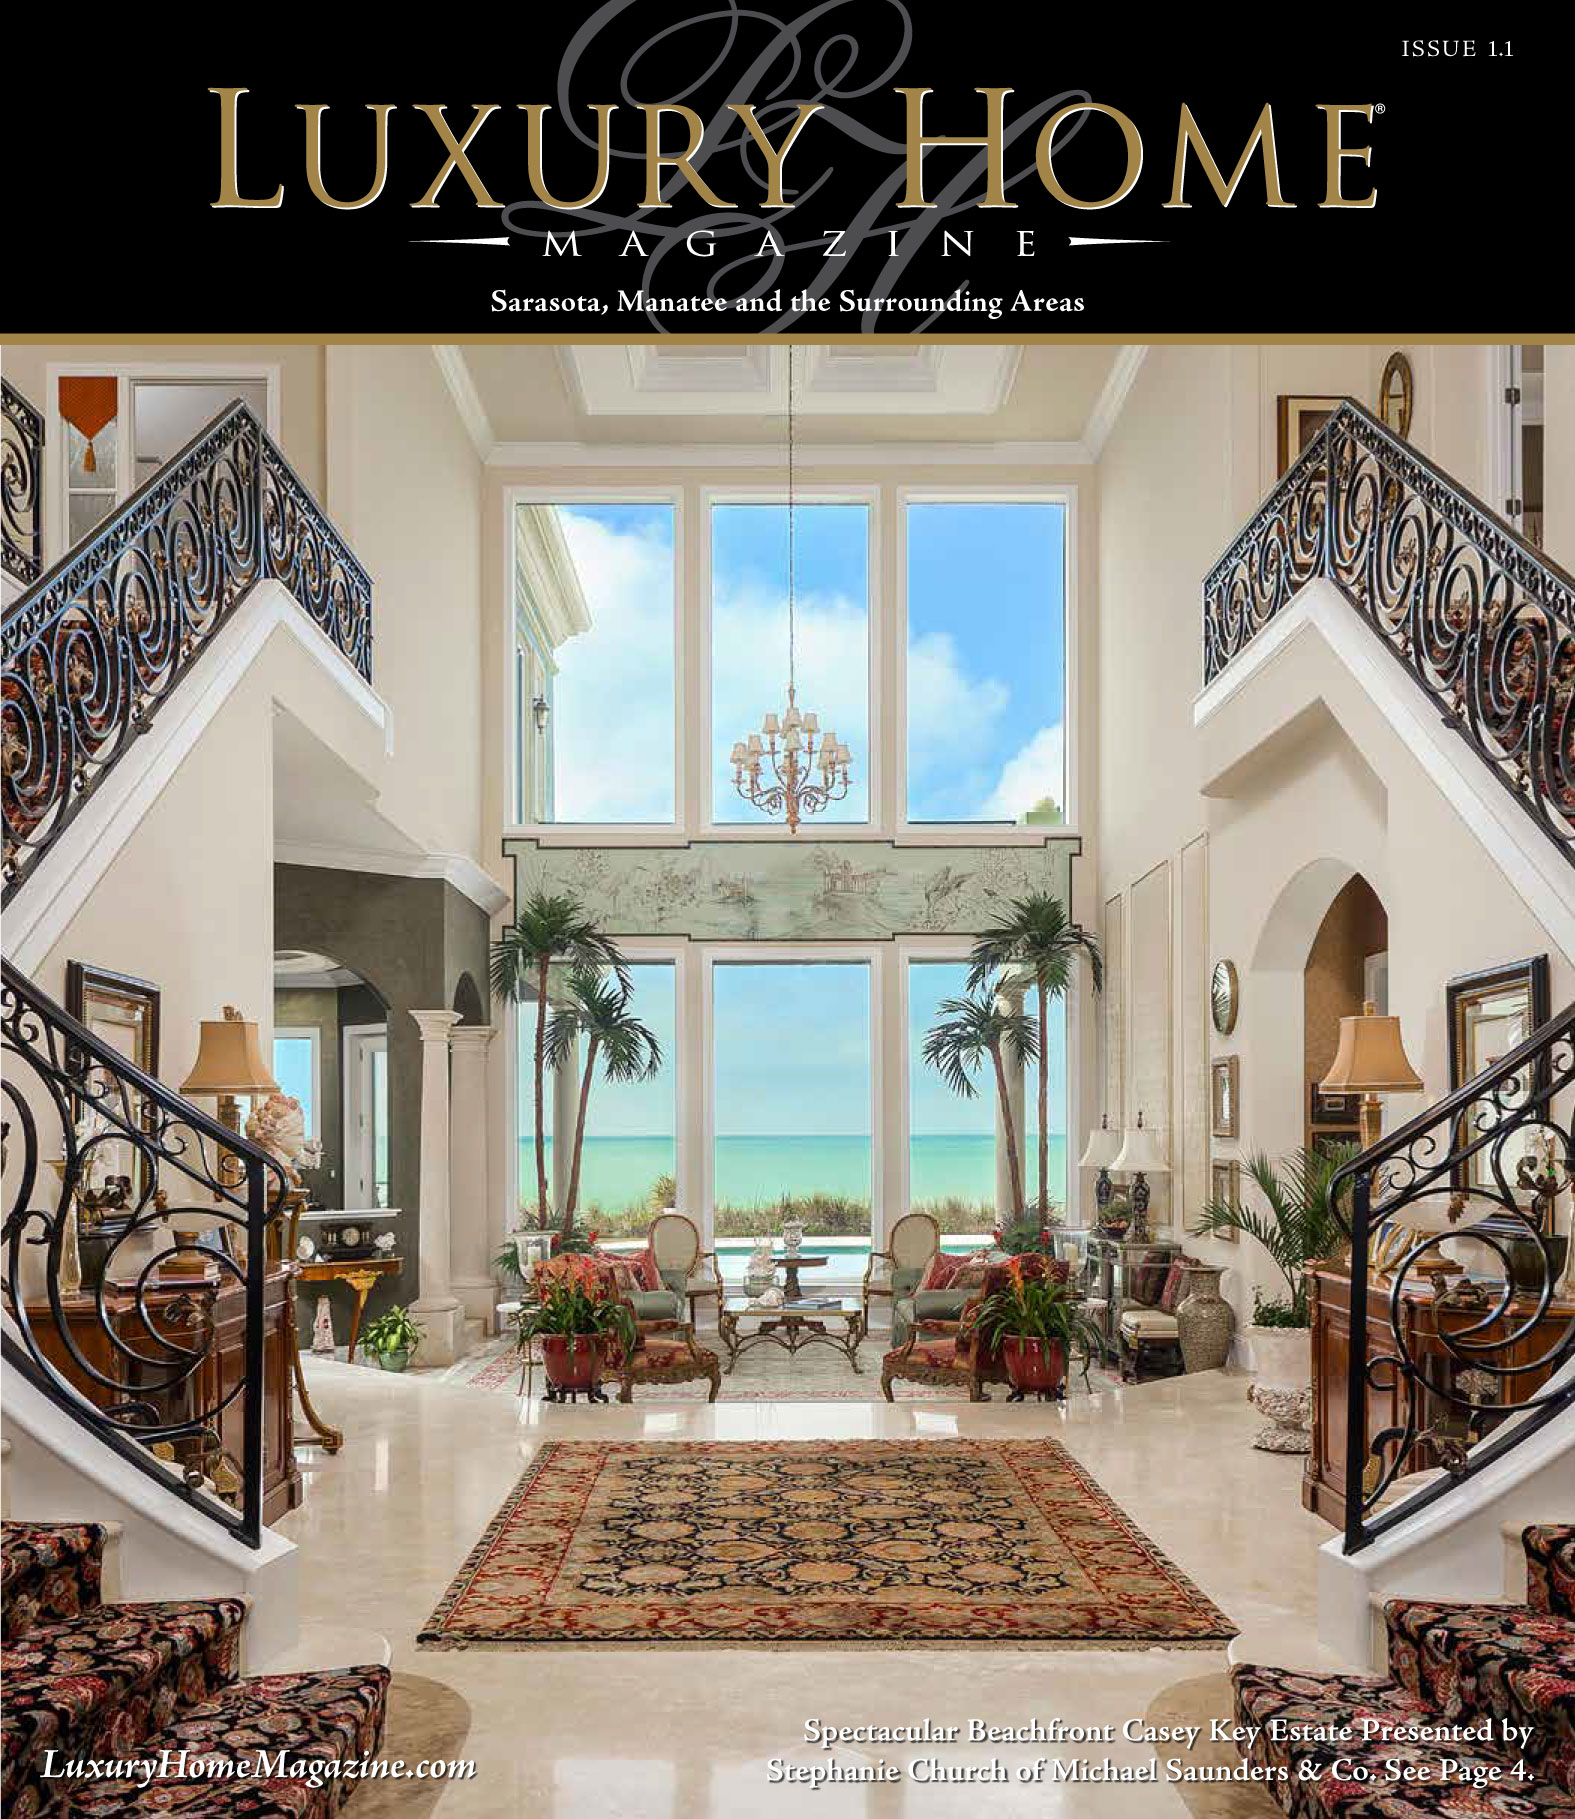 Home Magazine: Luxury Home Magazine® Launches New Publication In Sarasota